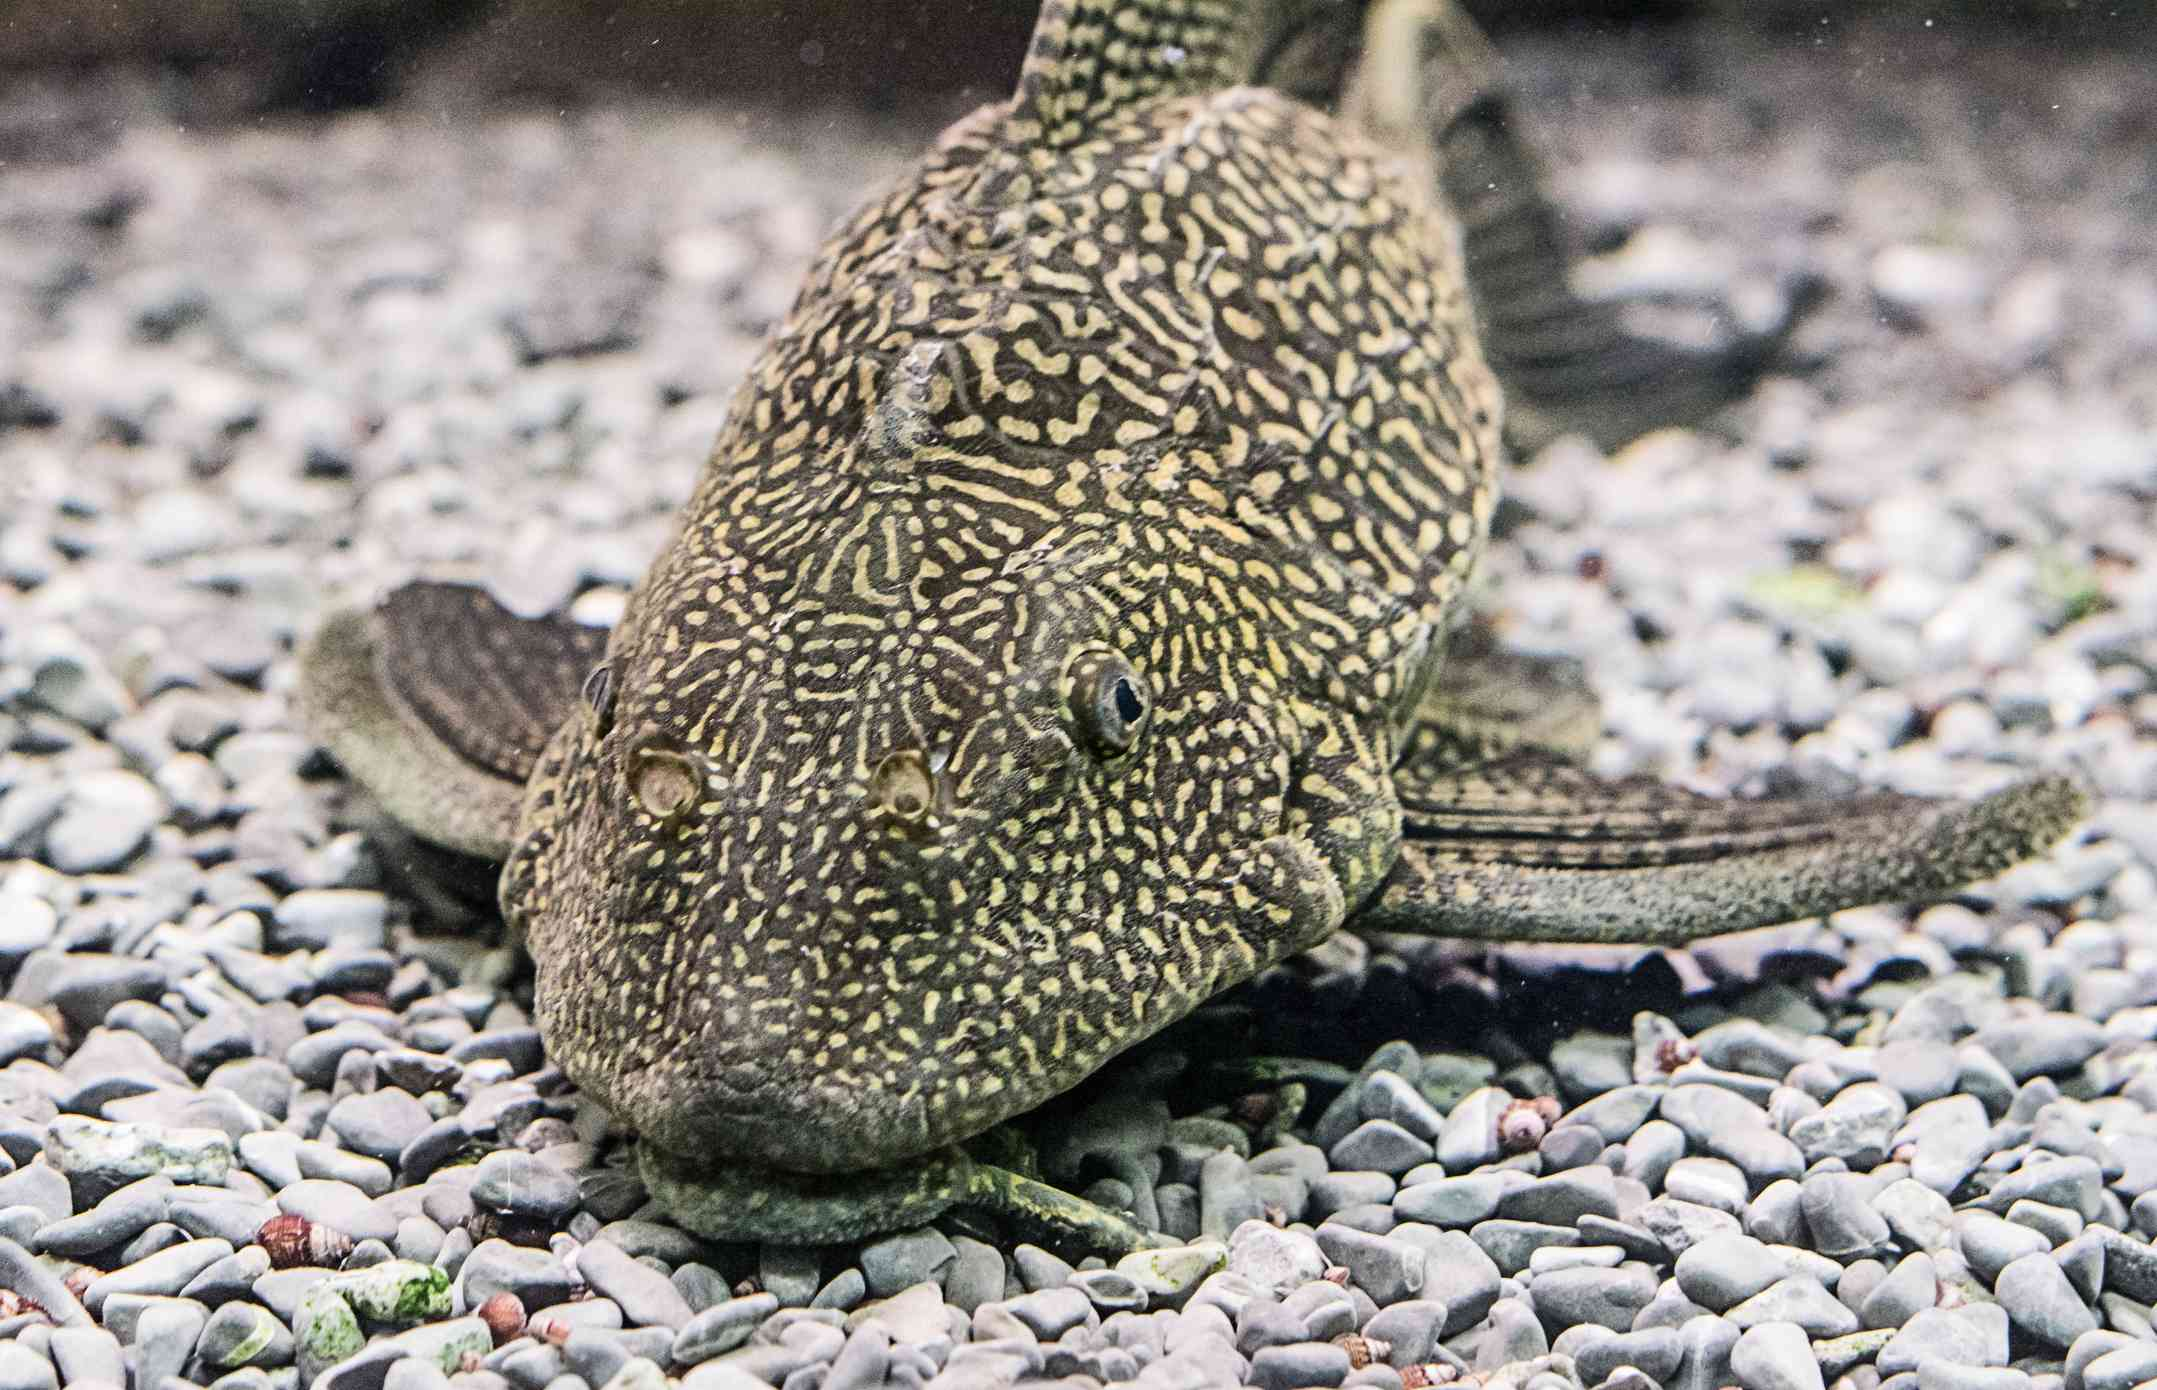 Plecostomus on gravel substrate